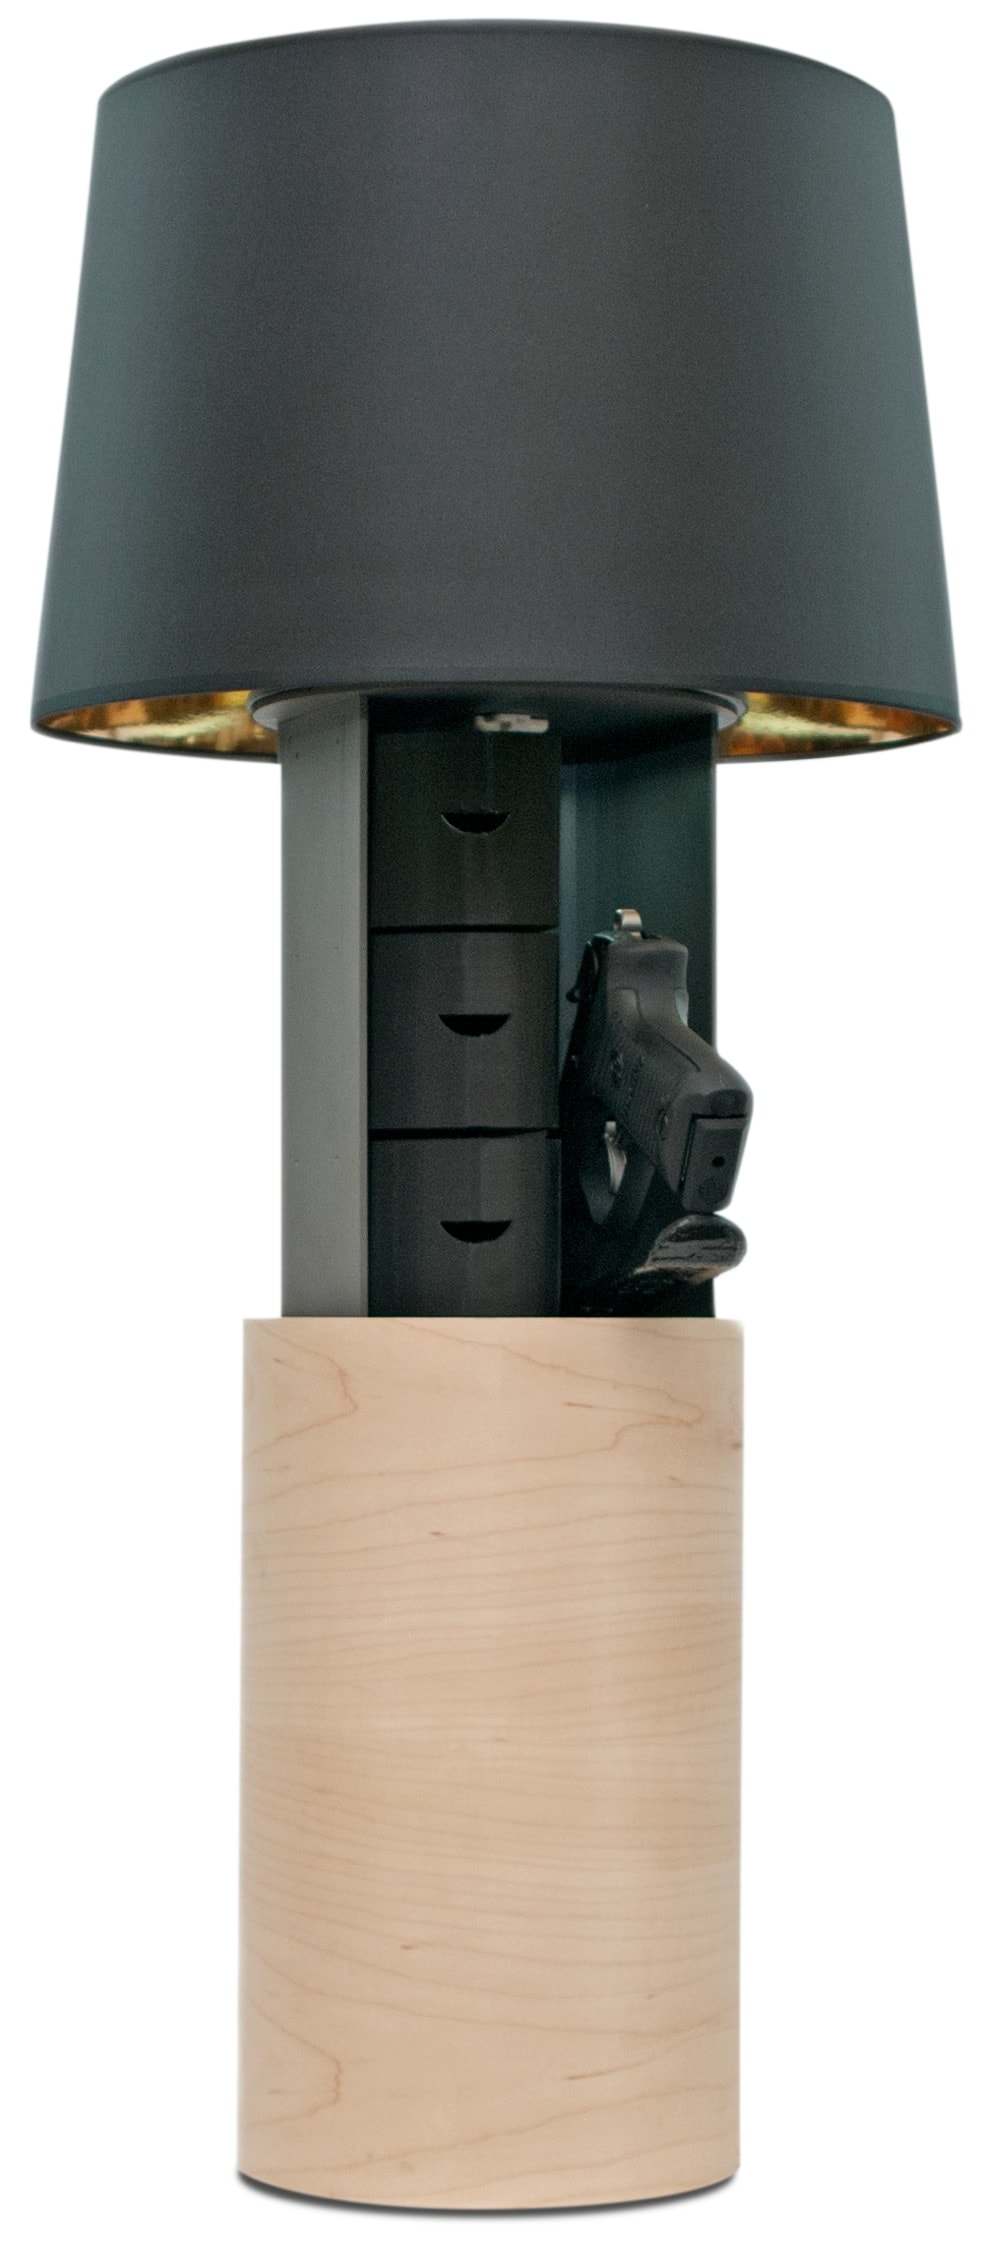 Guns and valuables are stowed in an internal compartment within the smart lamp. (Photo: Odon Inc.)